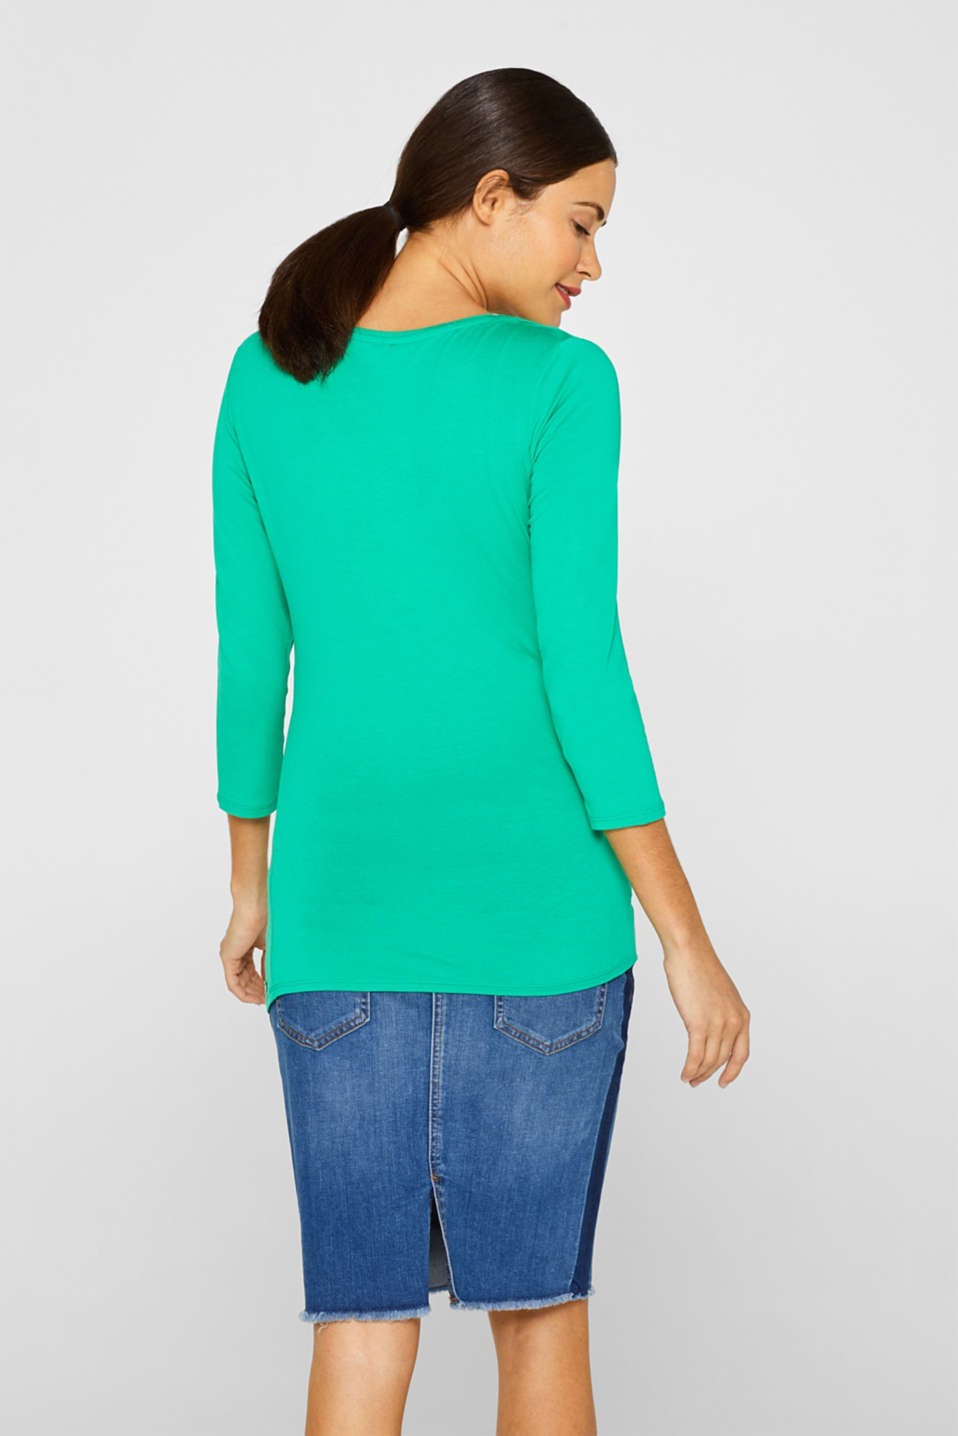 Stretch nursing top with knot detail, LCEMERALD GREEN, detail image number 3